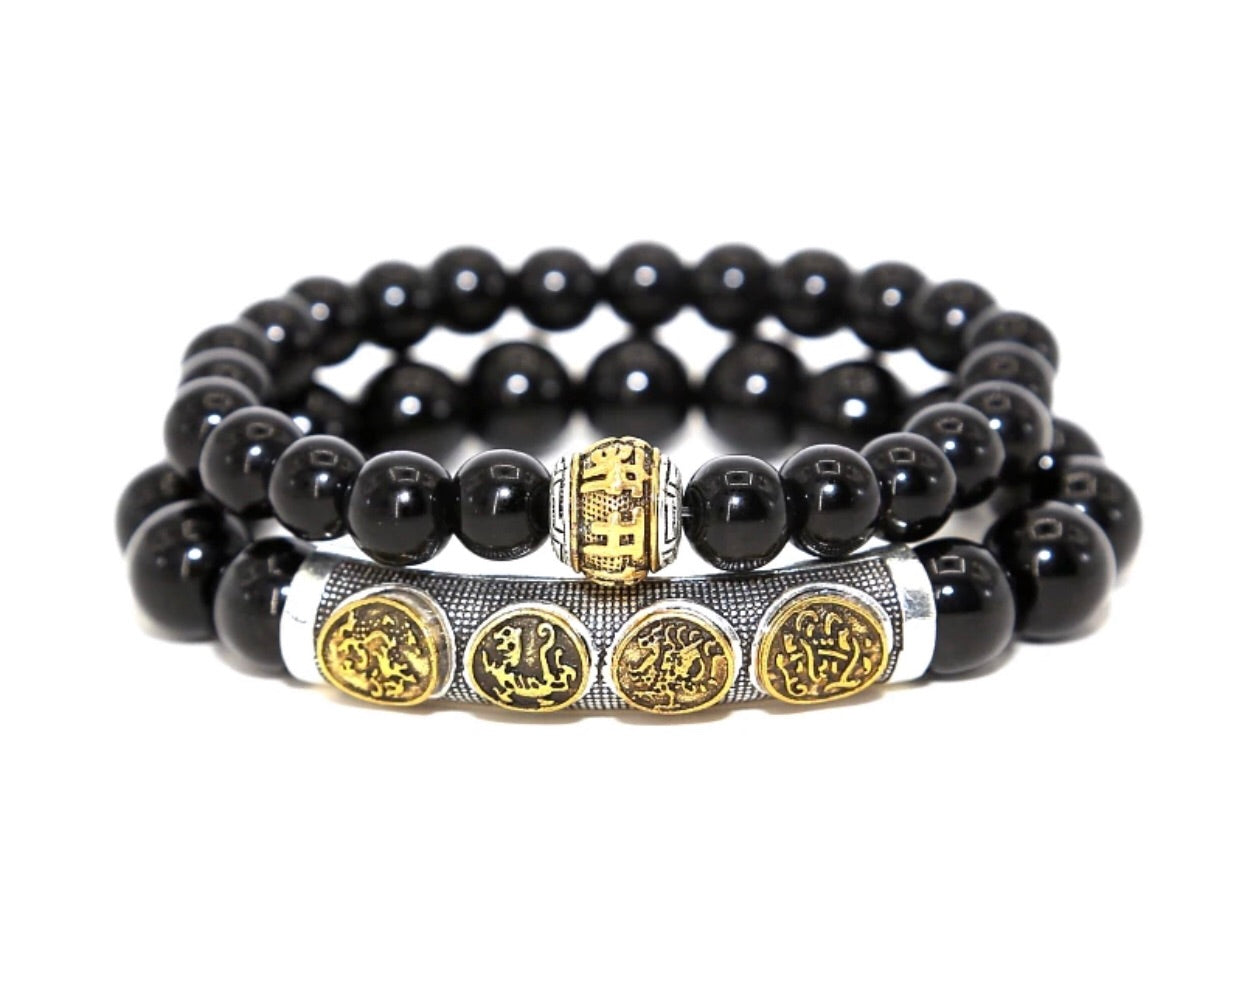 KC CROWN 'ᴄʜᴀɴɢᴇ' OM MANI PADME Prayer Bracelets